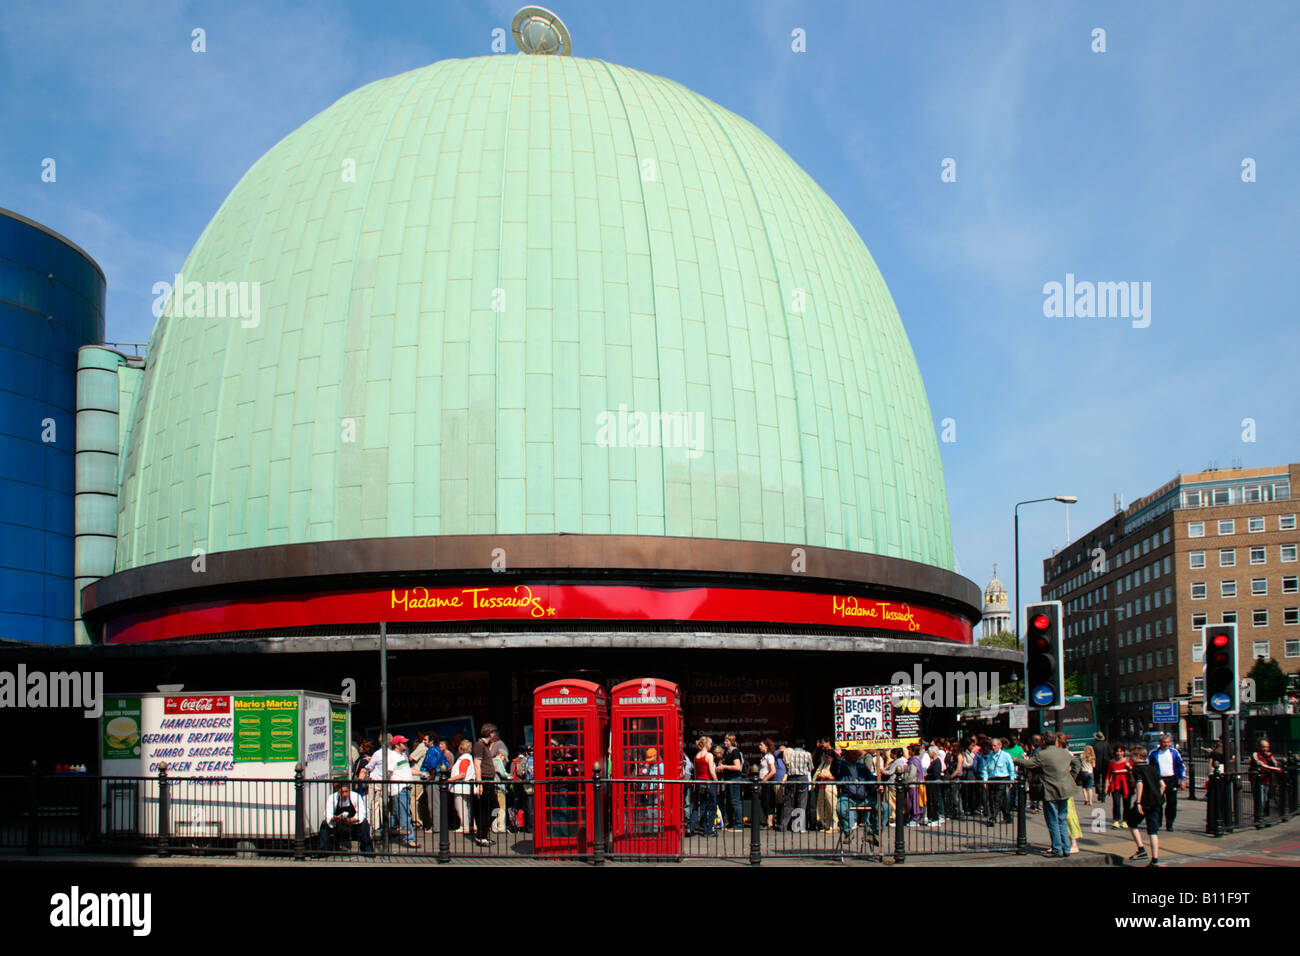 City Of Mobile Building In